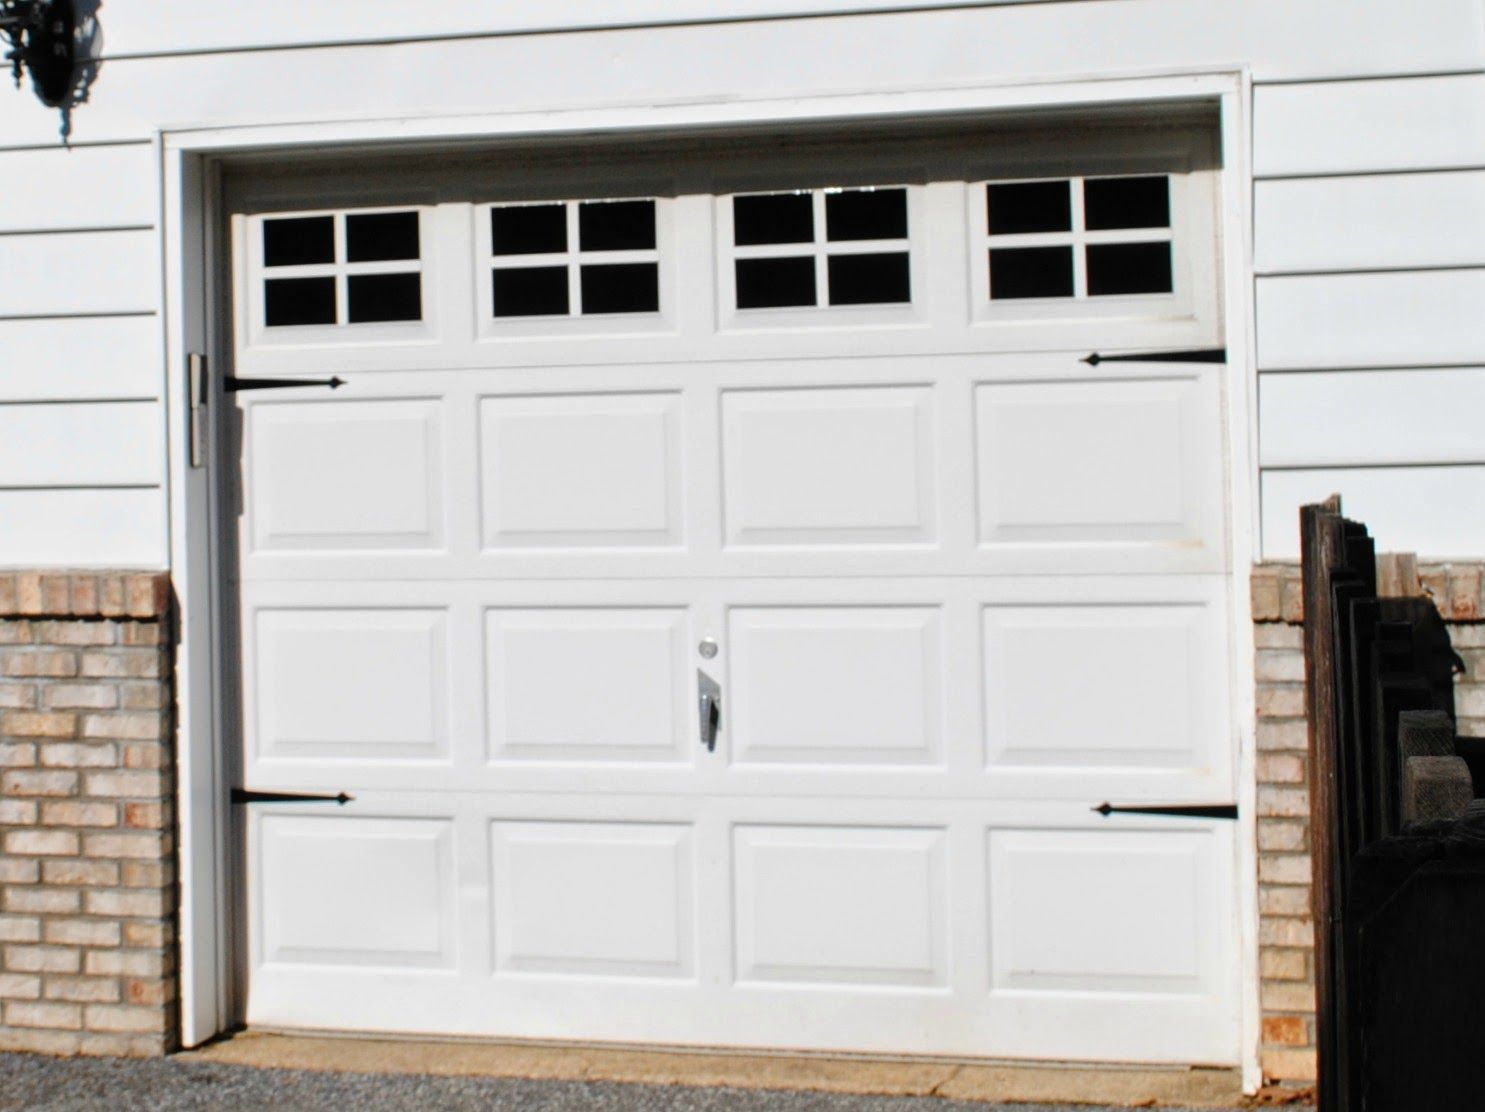 Diy Vinyl Faux Carriage Garage Doors Free Studio File Giveaway Garage Doors Garage Door Windows Garage Door Design